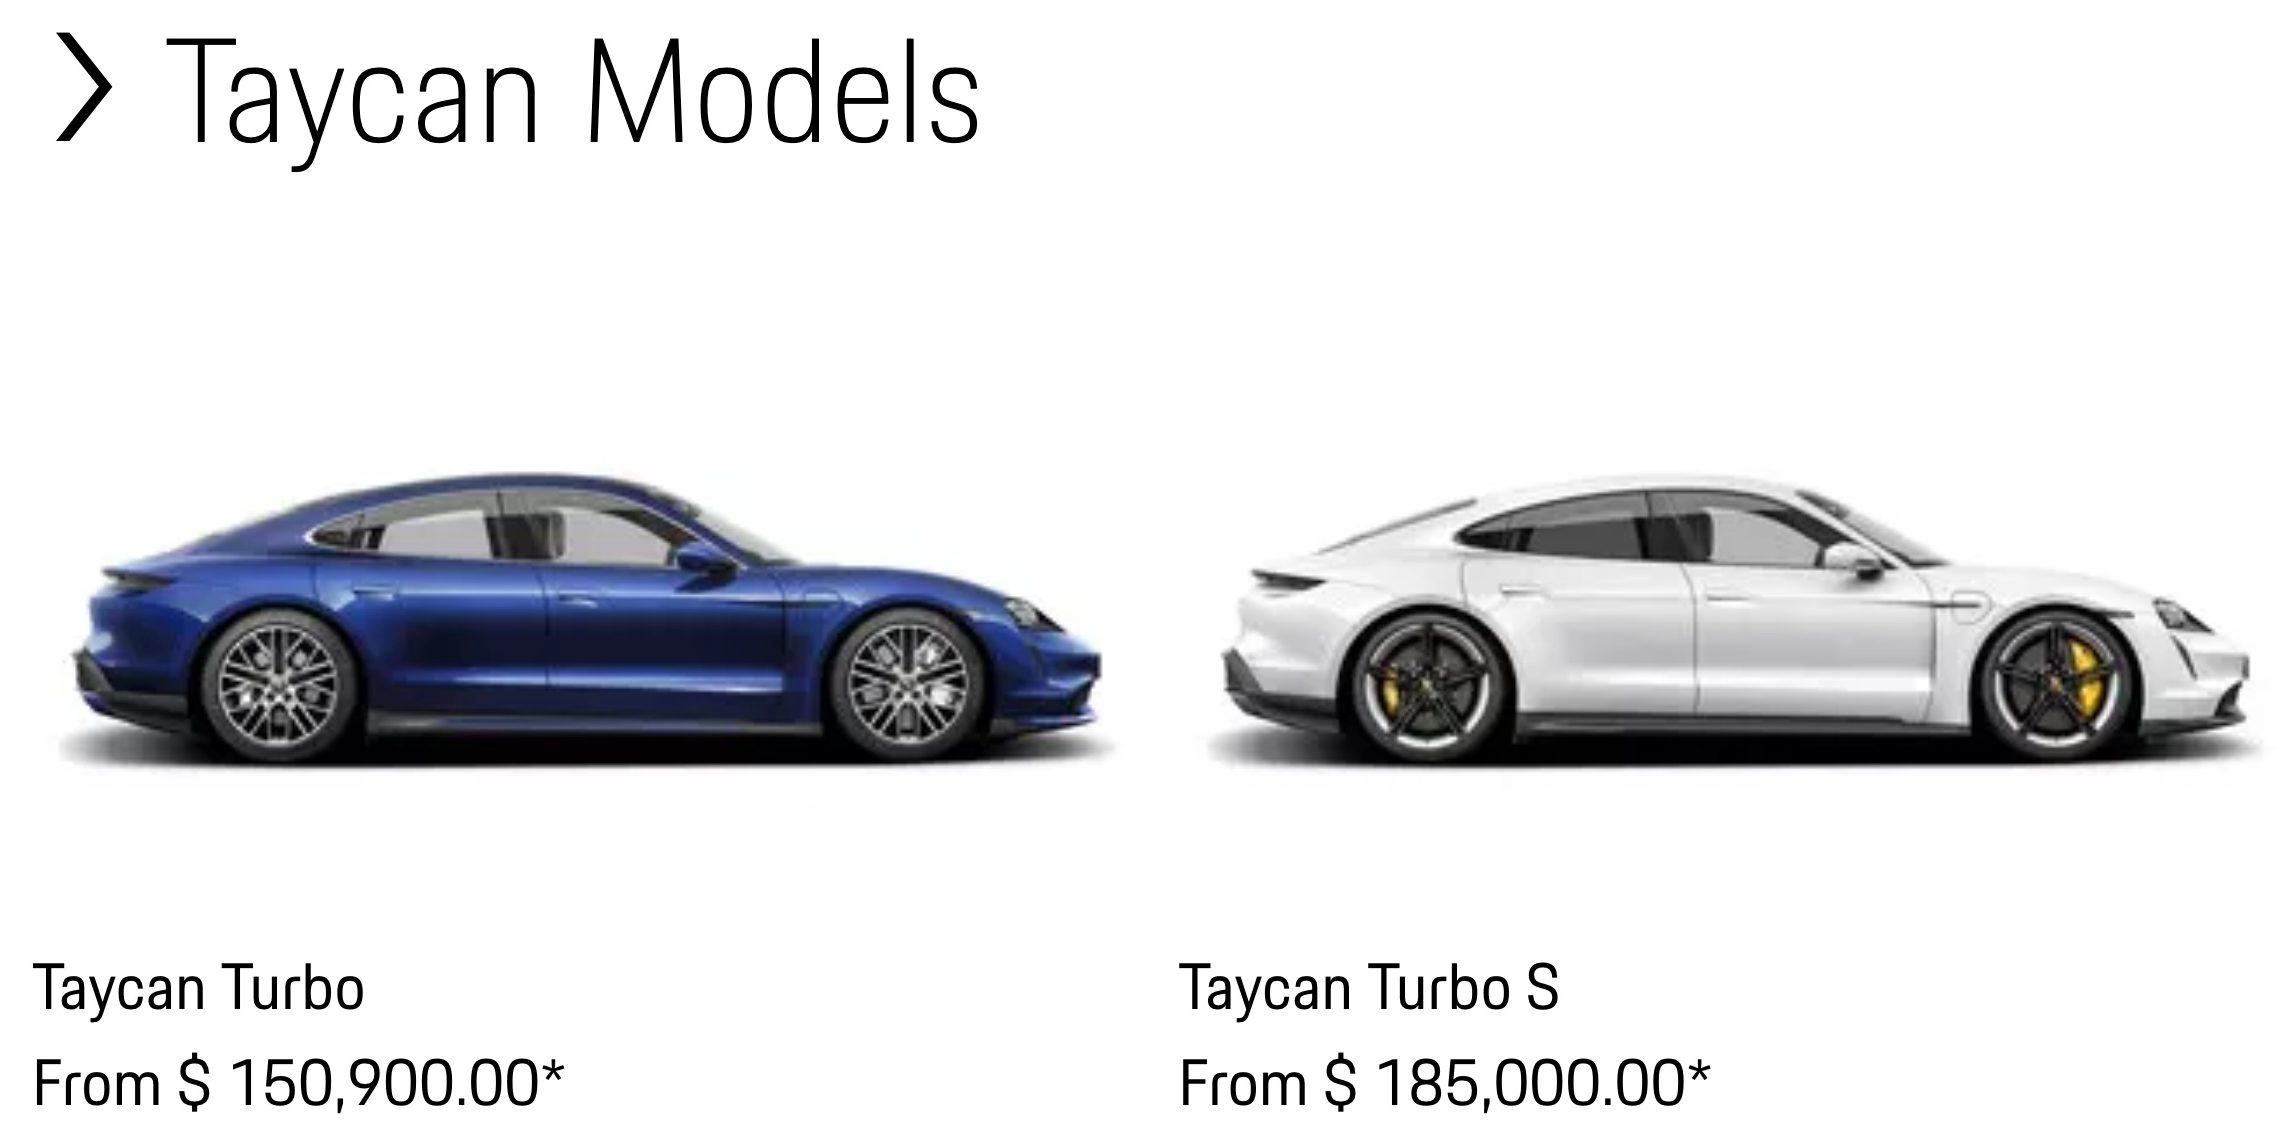 Porsche Taycan Turbo vs. Turbo S base pricing